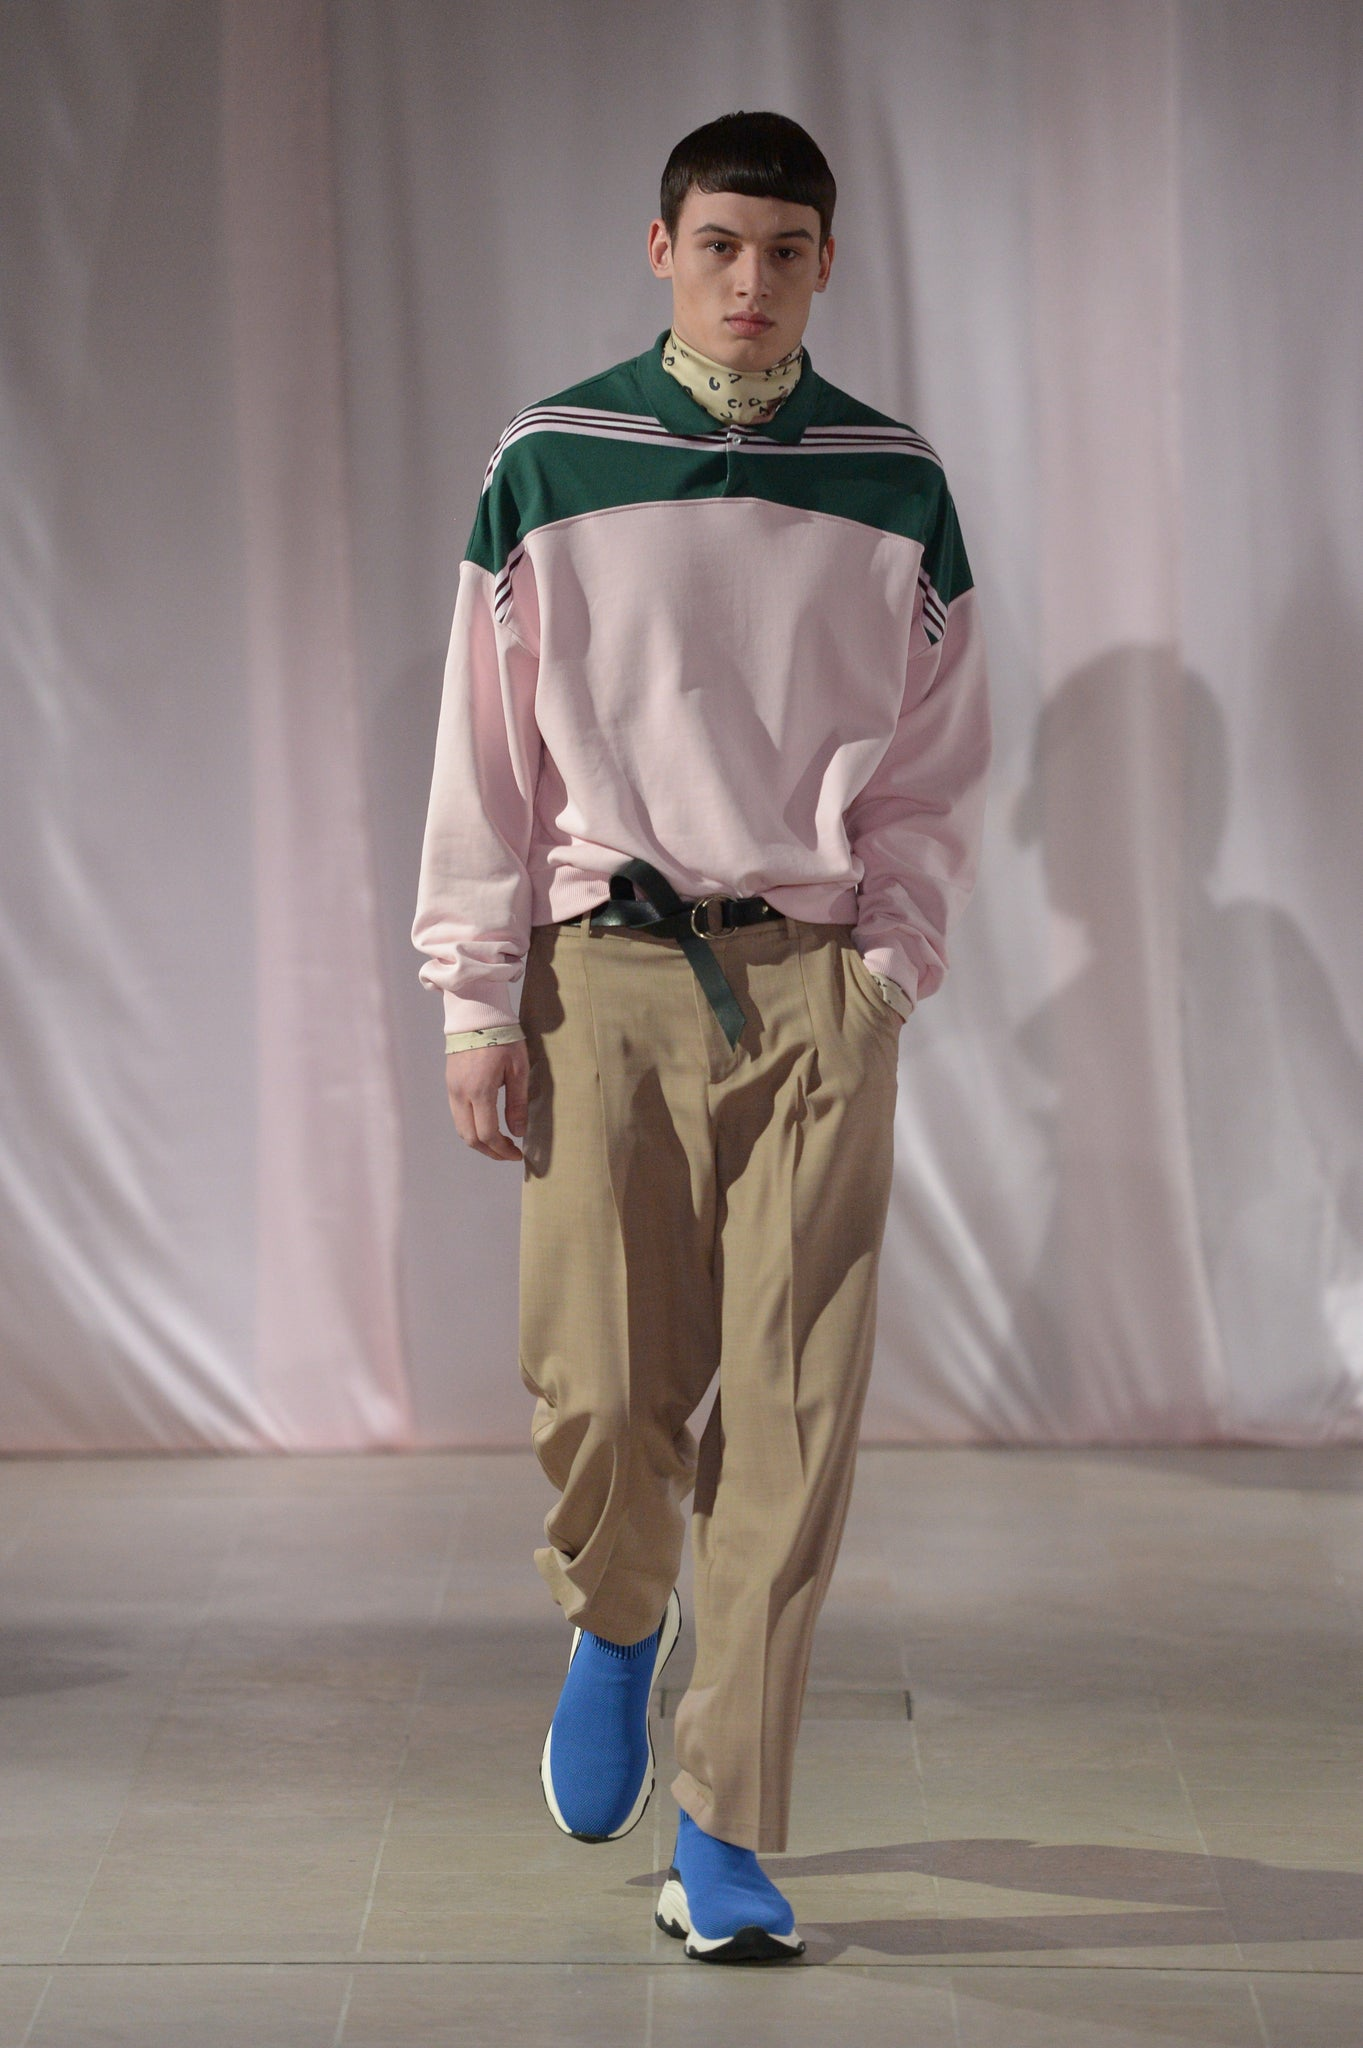 Martin Asbjørn Richie Polo Shirt in pink menswear mensfashion